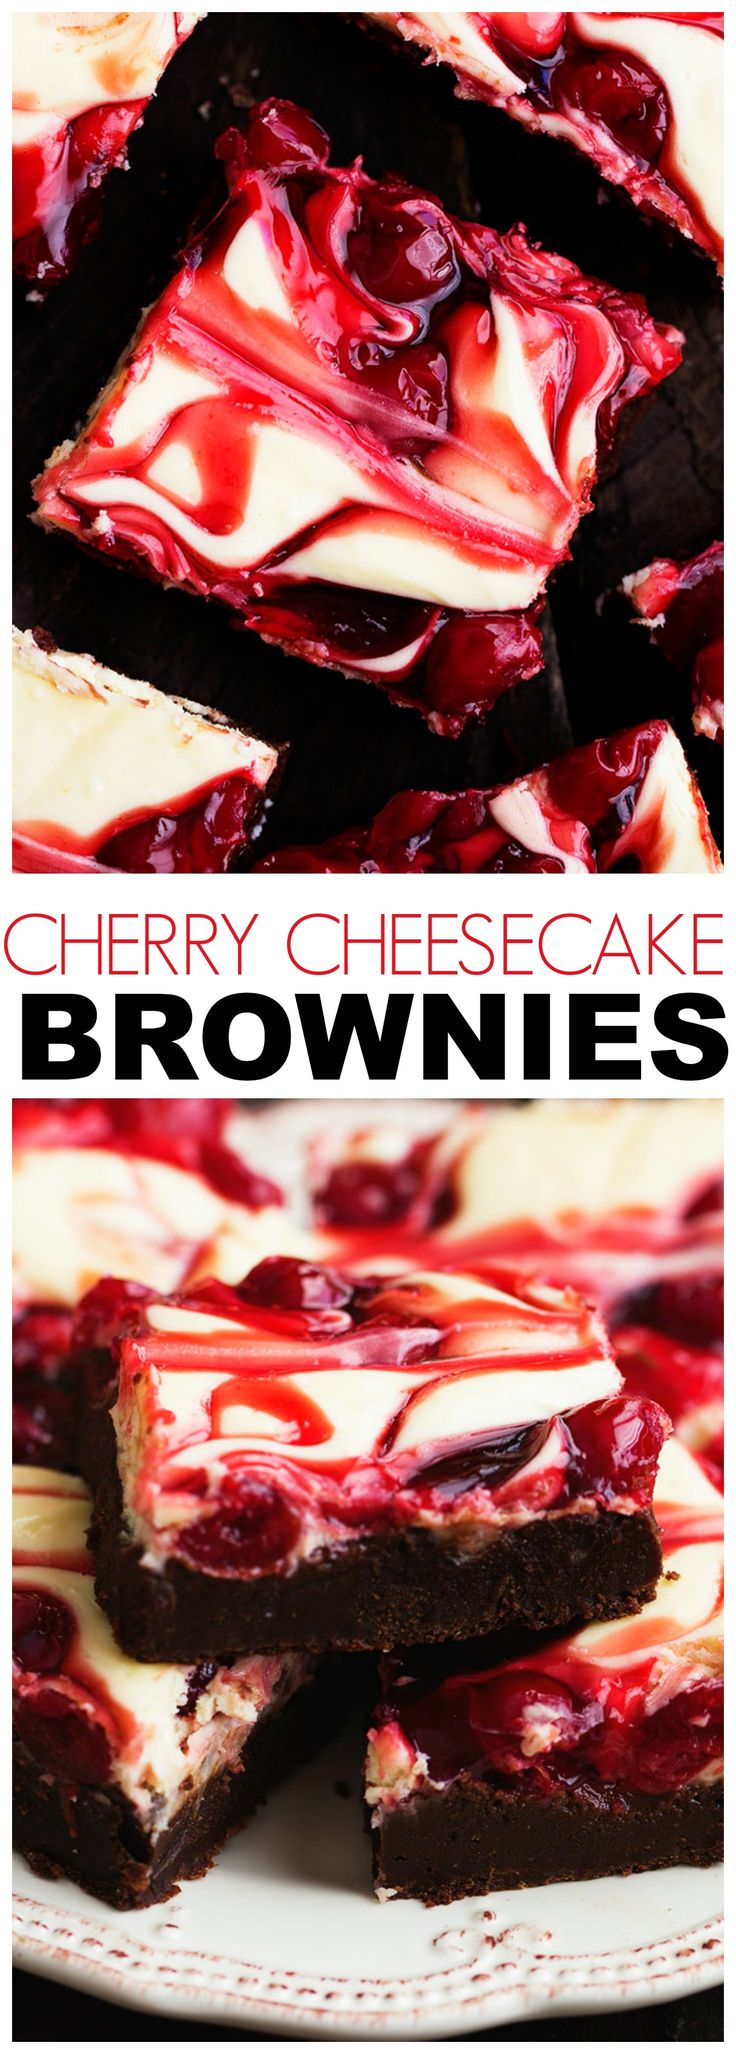 Cherry Cheesecake Brownies are one of the BEST brownies you will make! Three amazing desserts combine in one to bring you a creamy